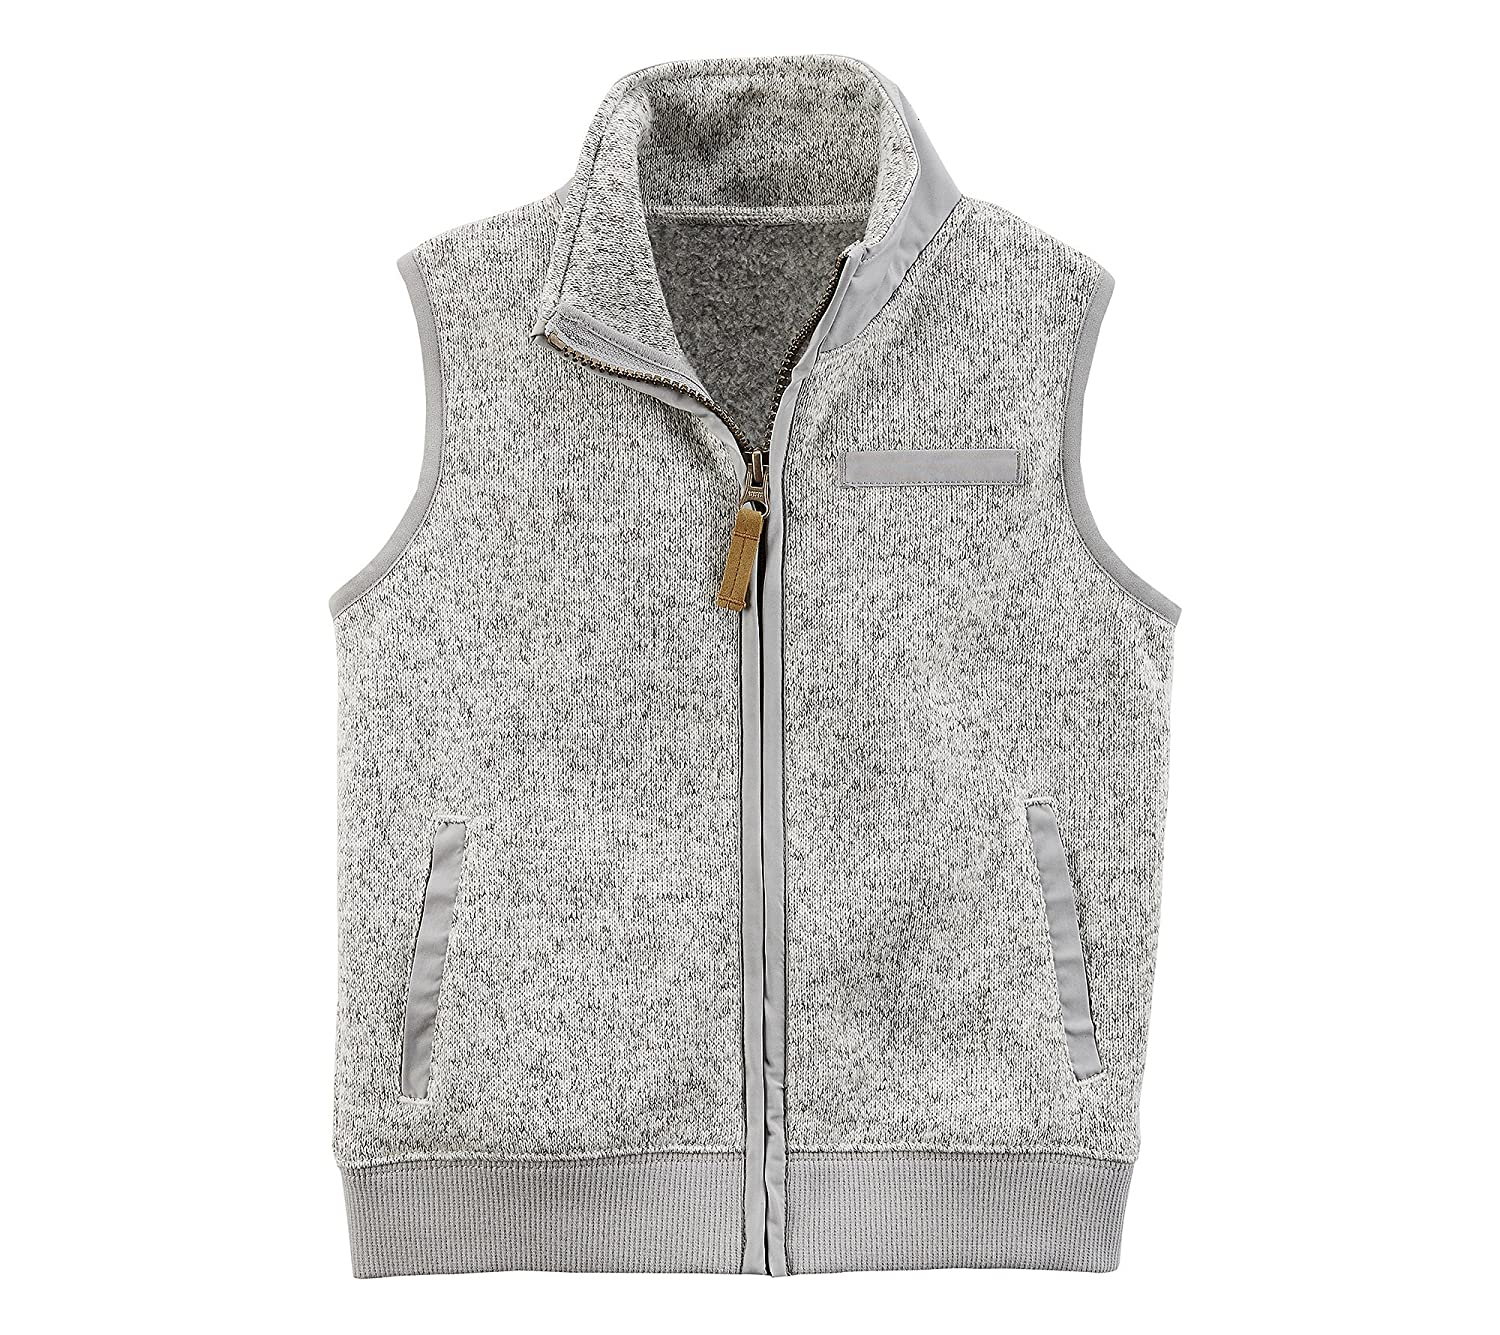 Carter's Boys' 2T-8 Zip Up Sweater Vest 263H179